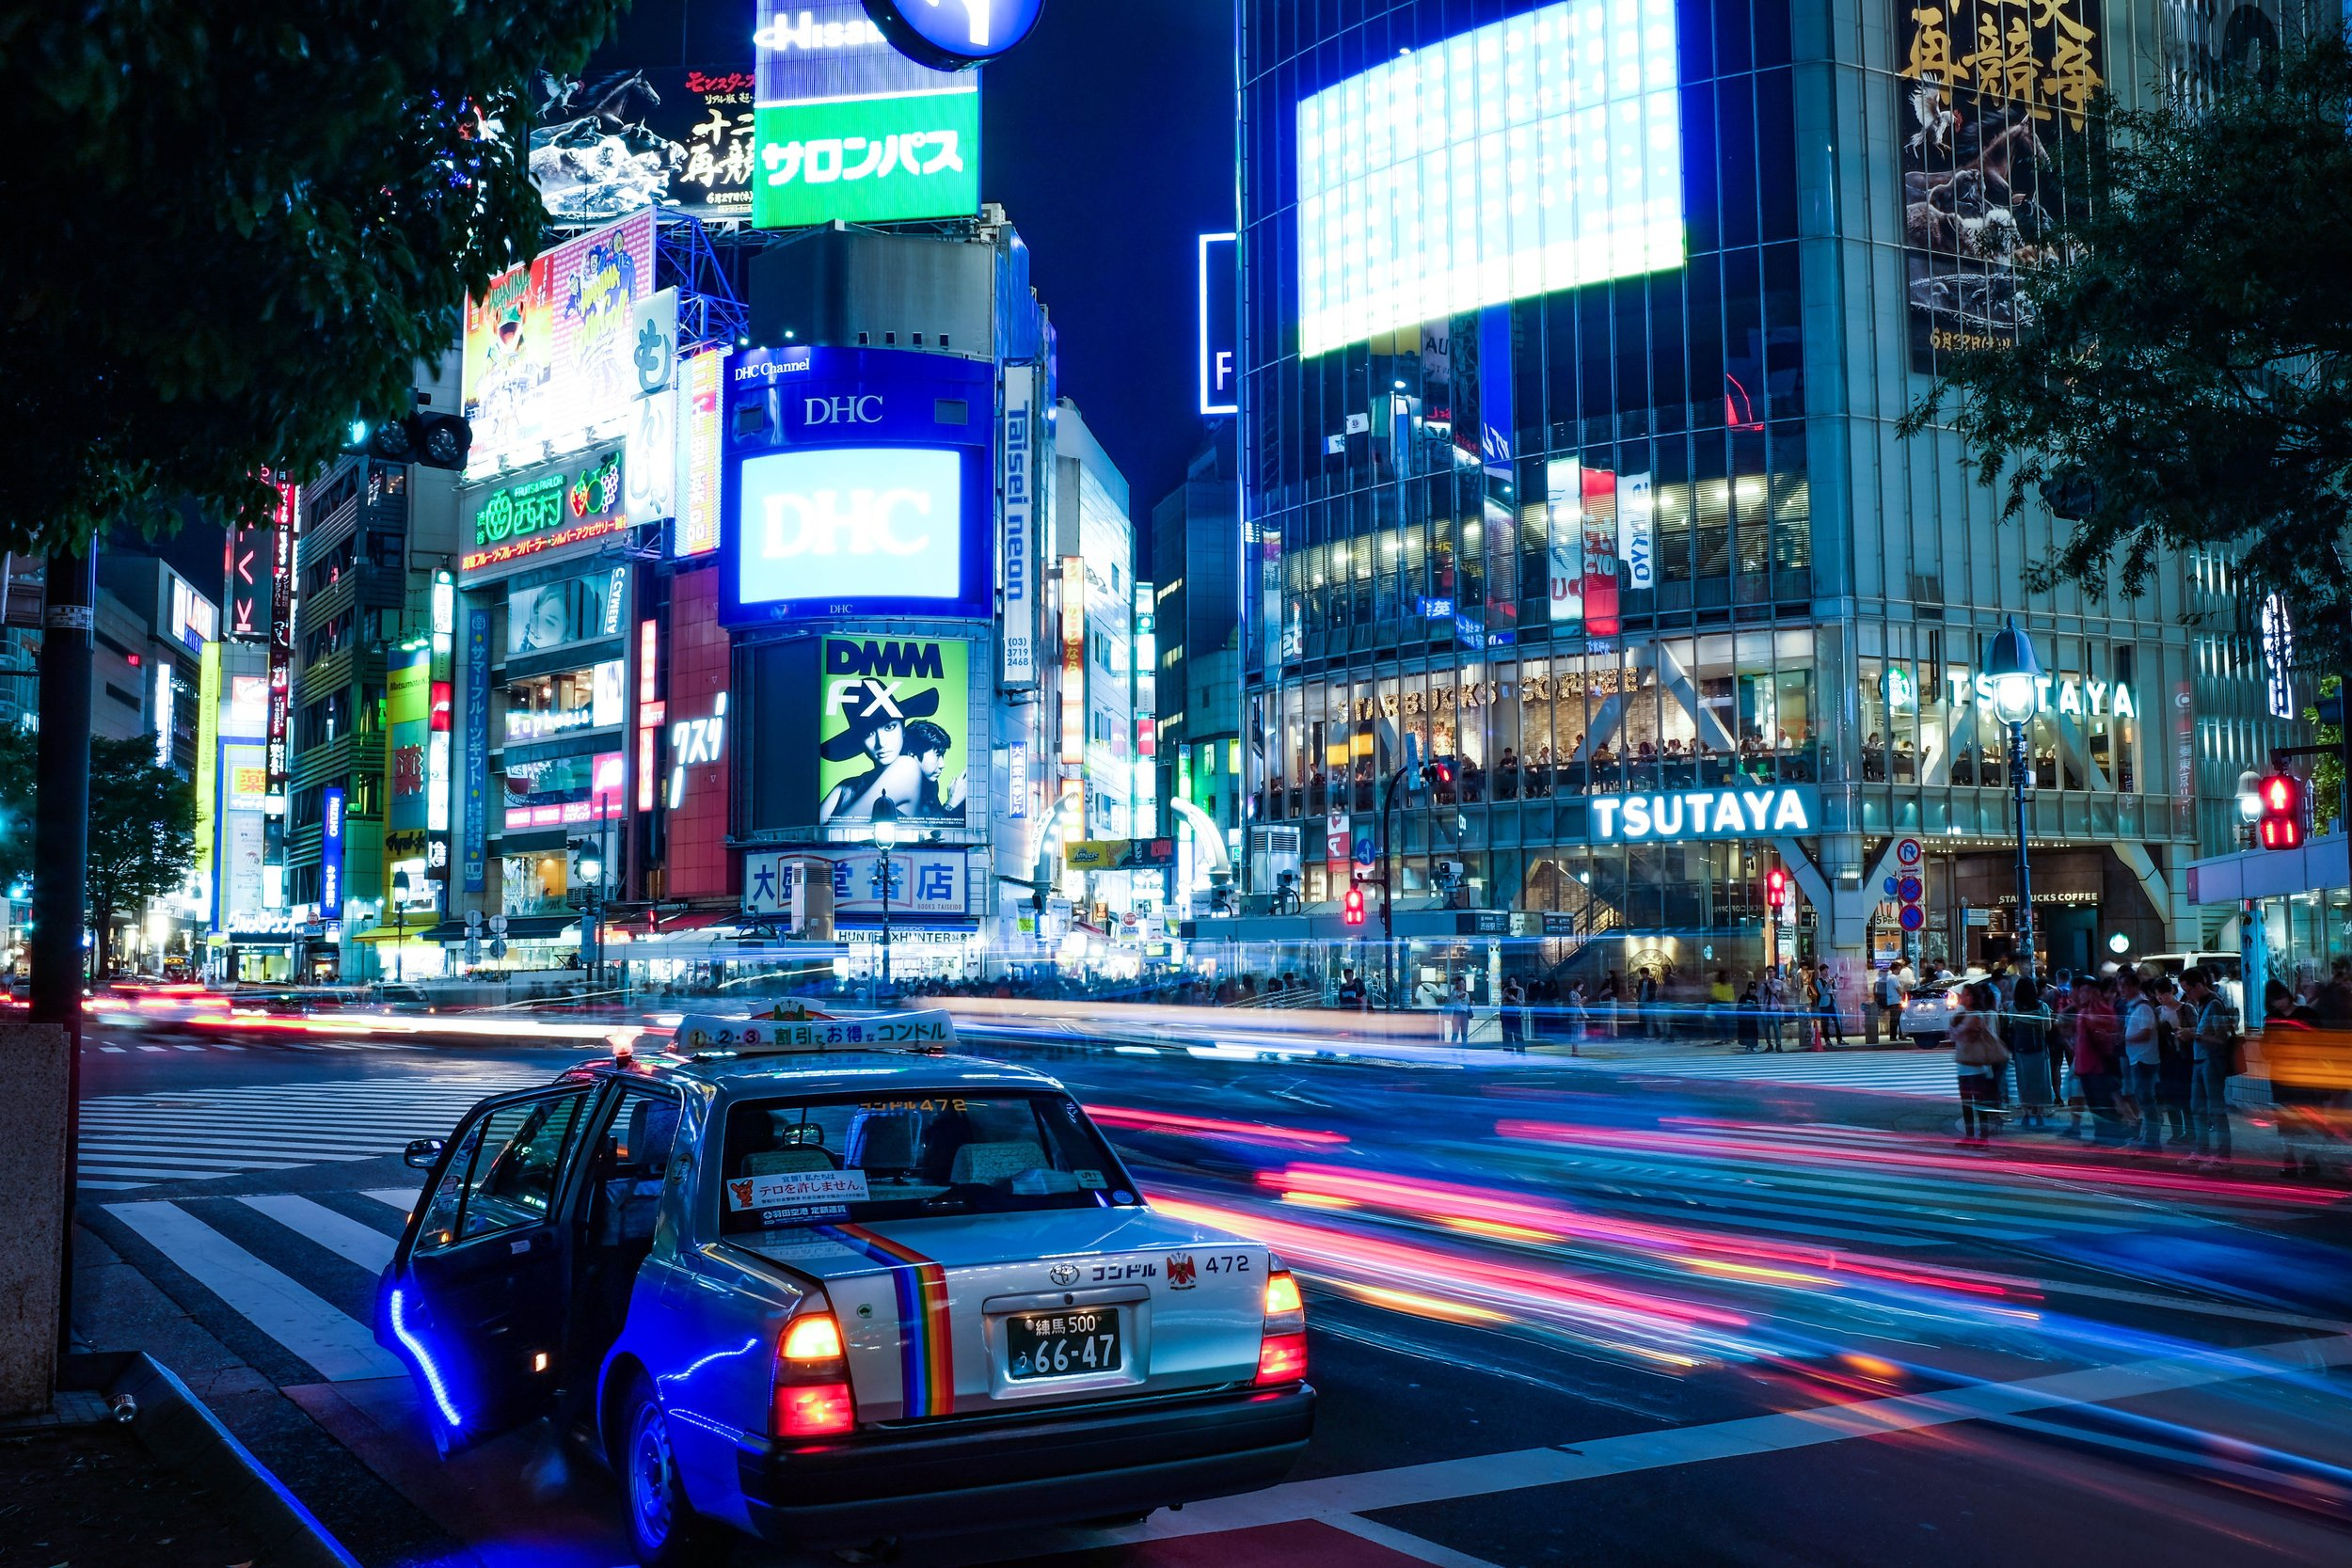 TOKYO IS KNOWN FOR ITS SCI-FI CITYSCAPES. CREDIT: ALEX KNIGHT / SHUTTERSTOCK